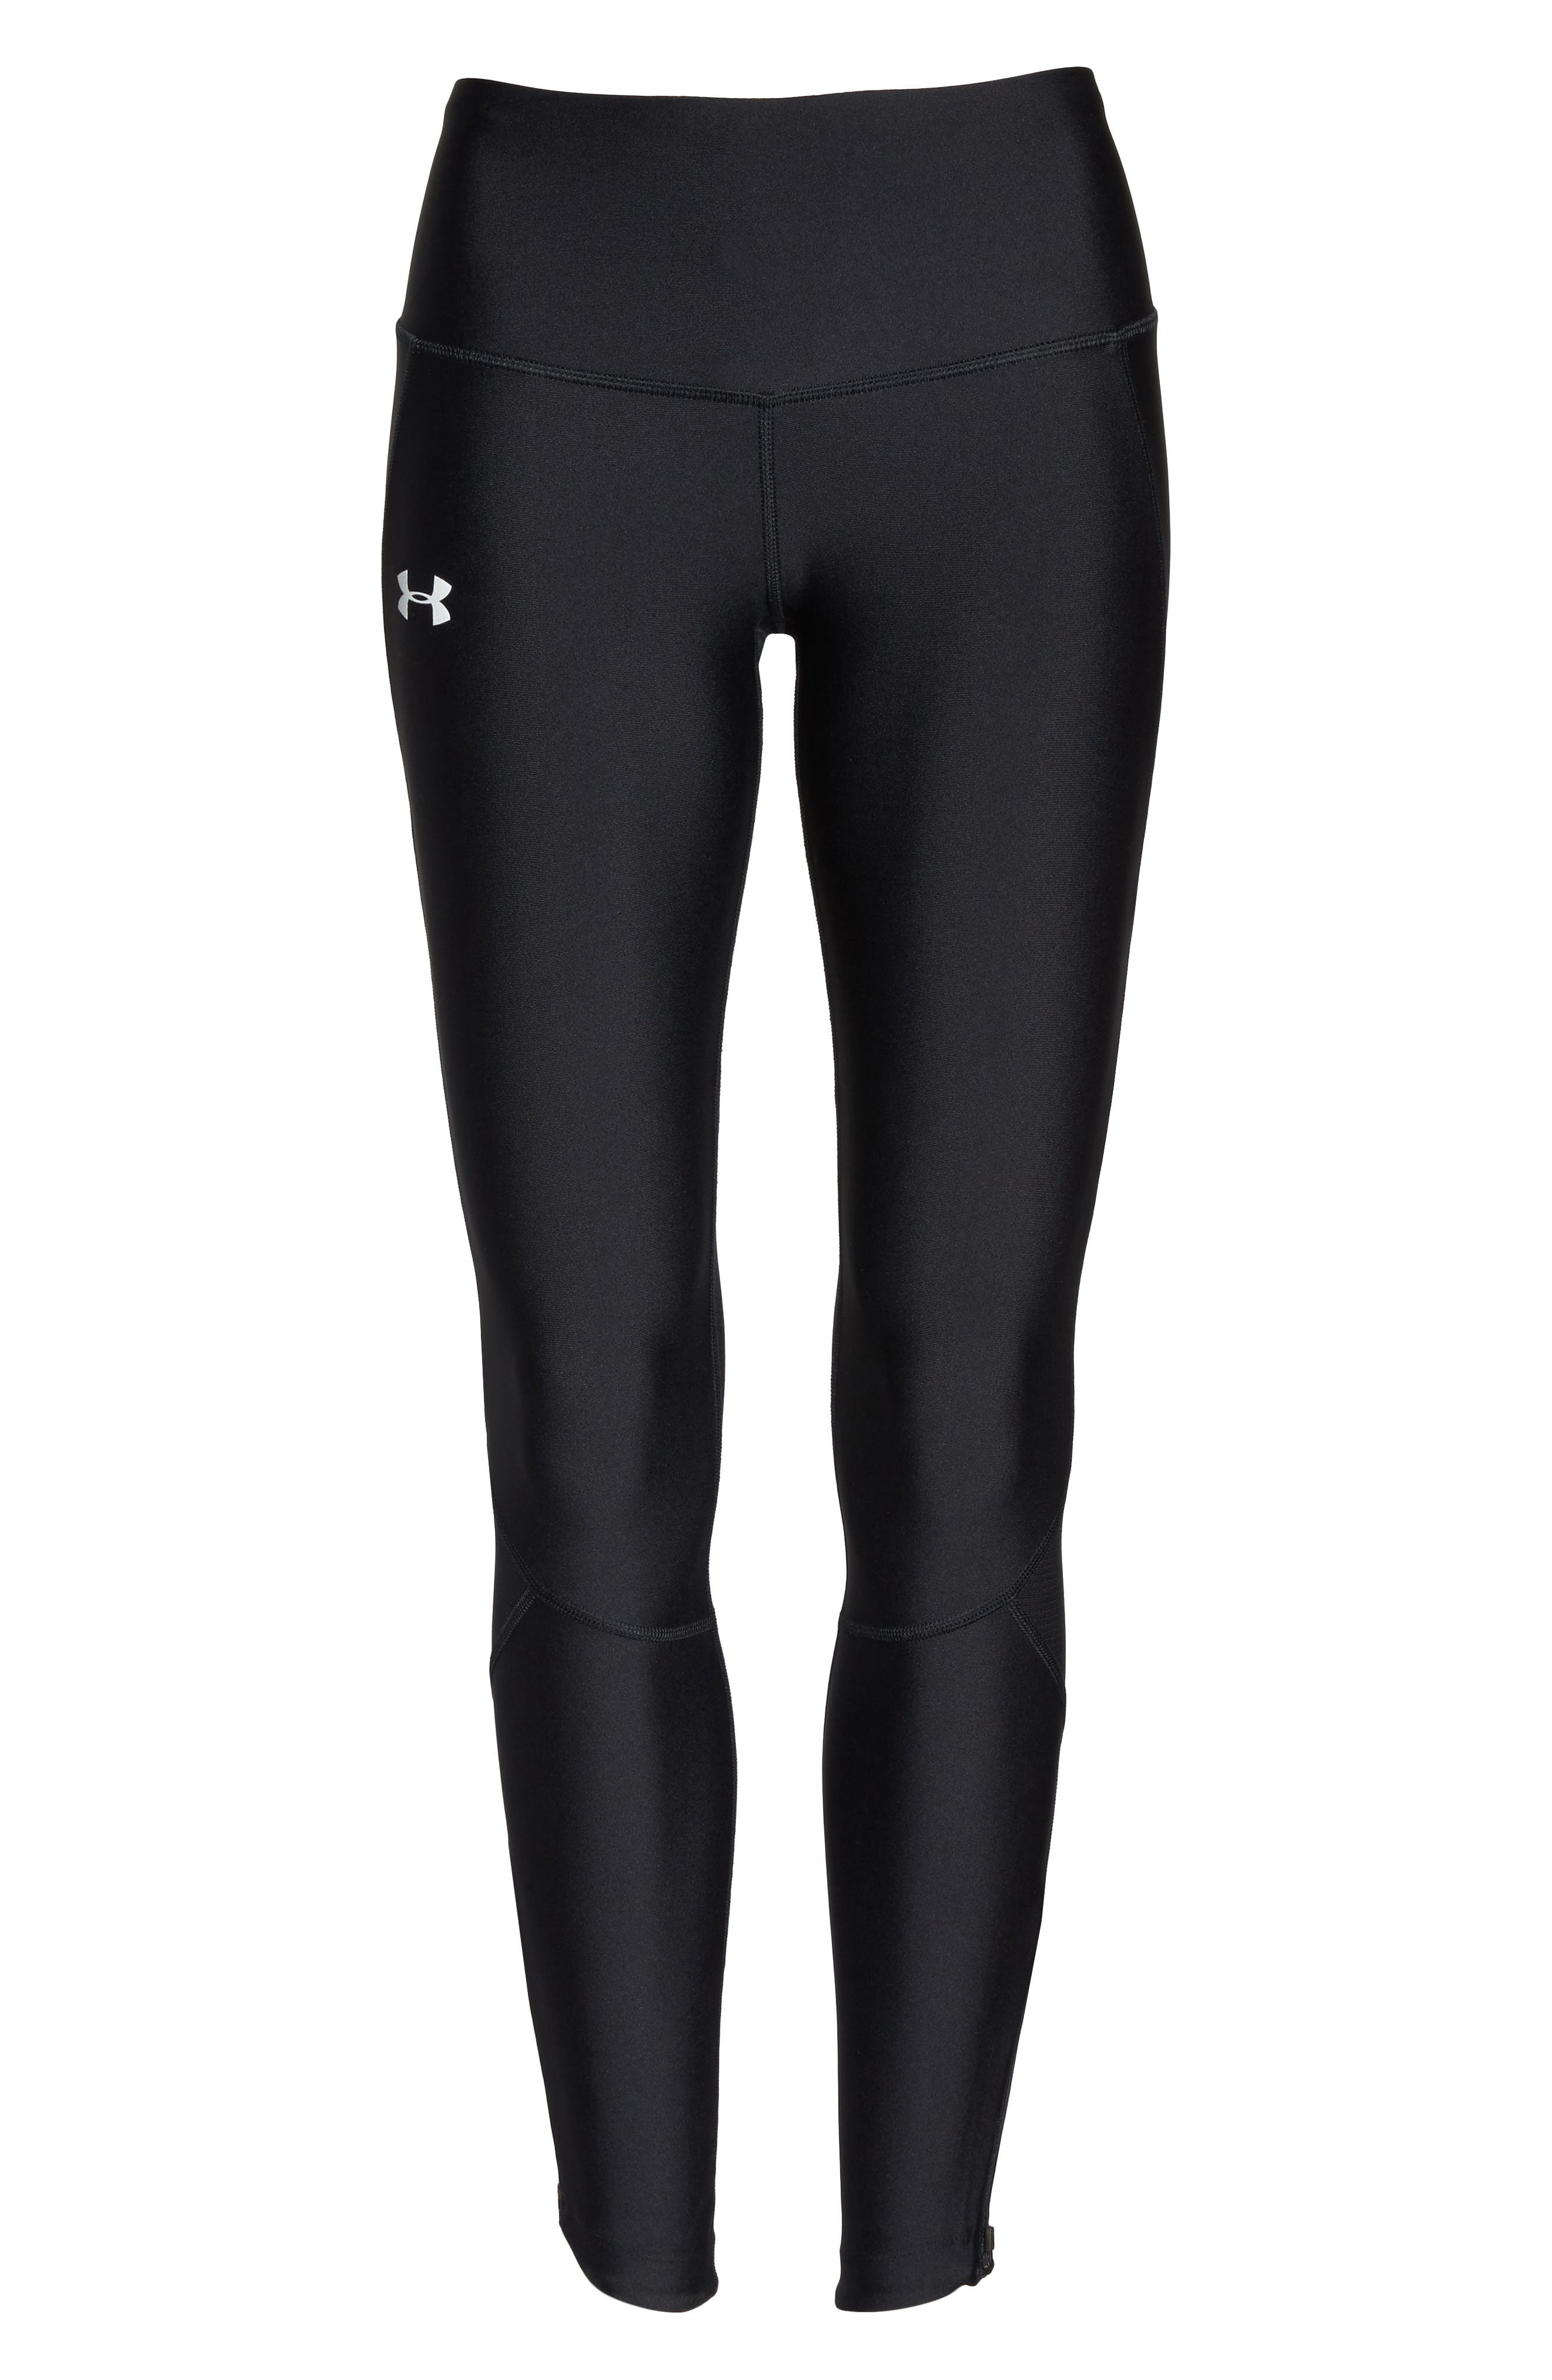 Fly Fast Tights,                             Alternate thumbnail 7, color,                             Black